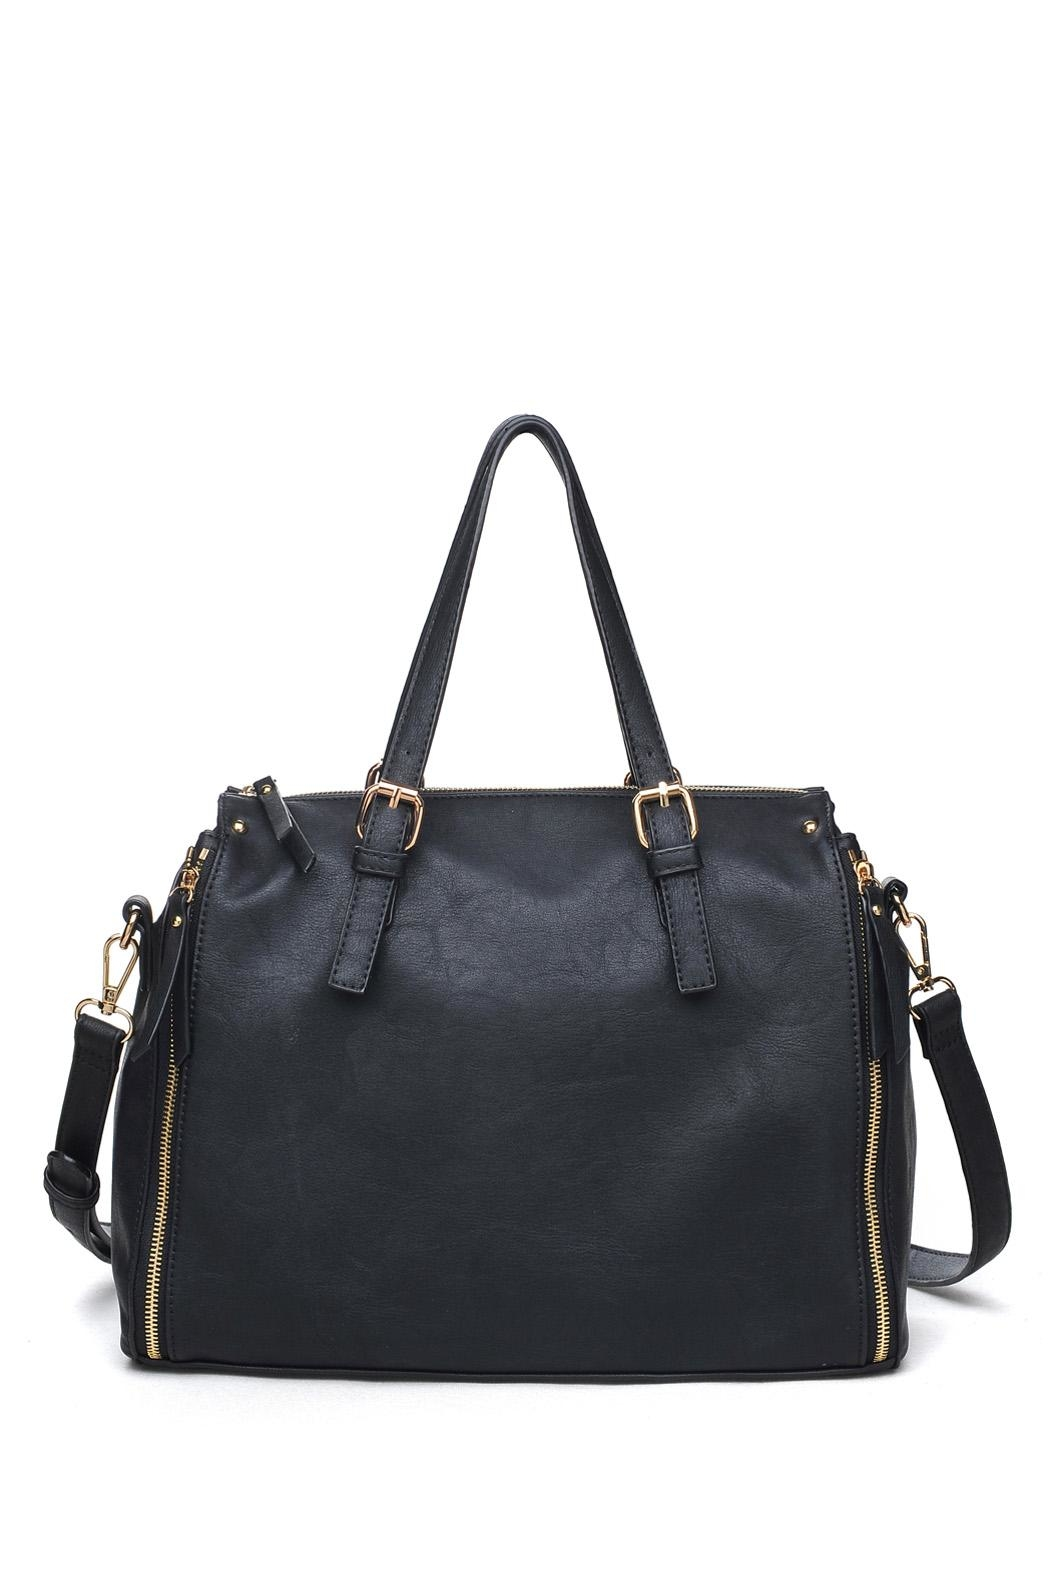 Urban Expressions Black Satchel Bag - Main Image